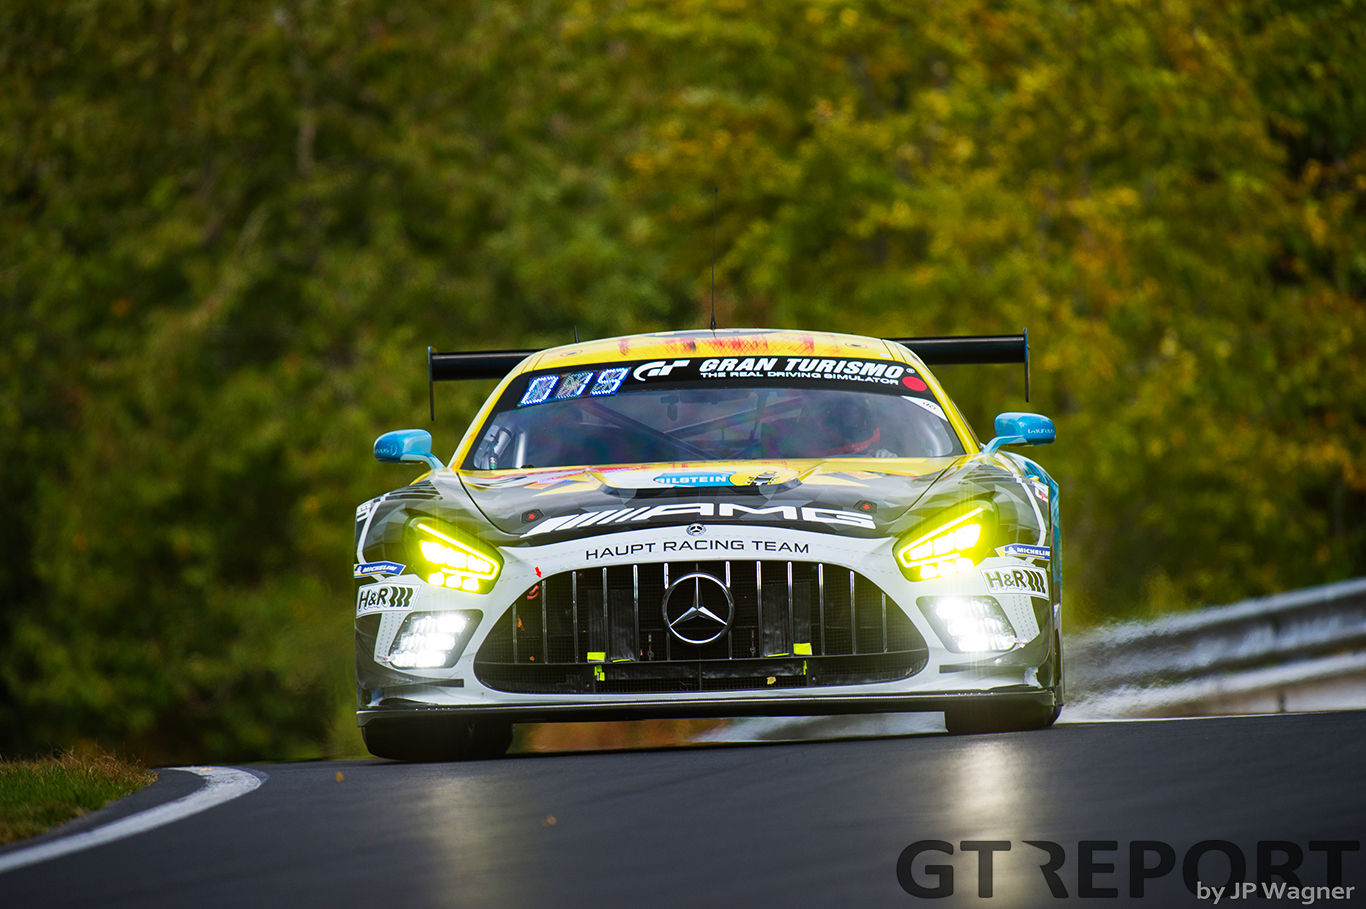 AMG brings in test chassis to replace crashed #2 Haupt Racing Team car